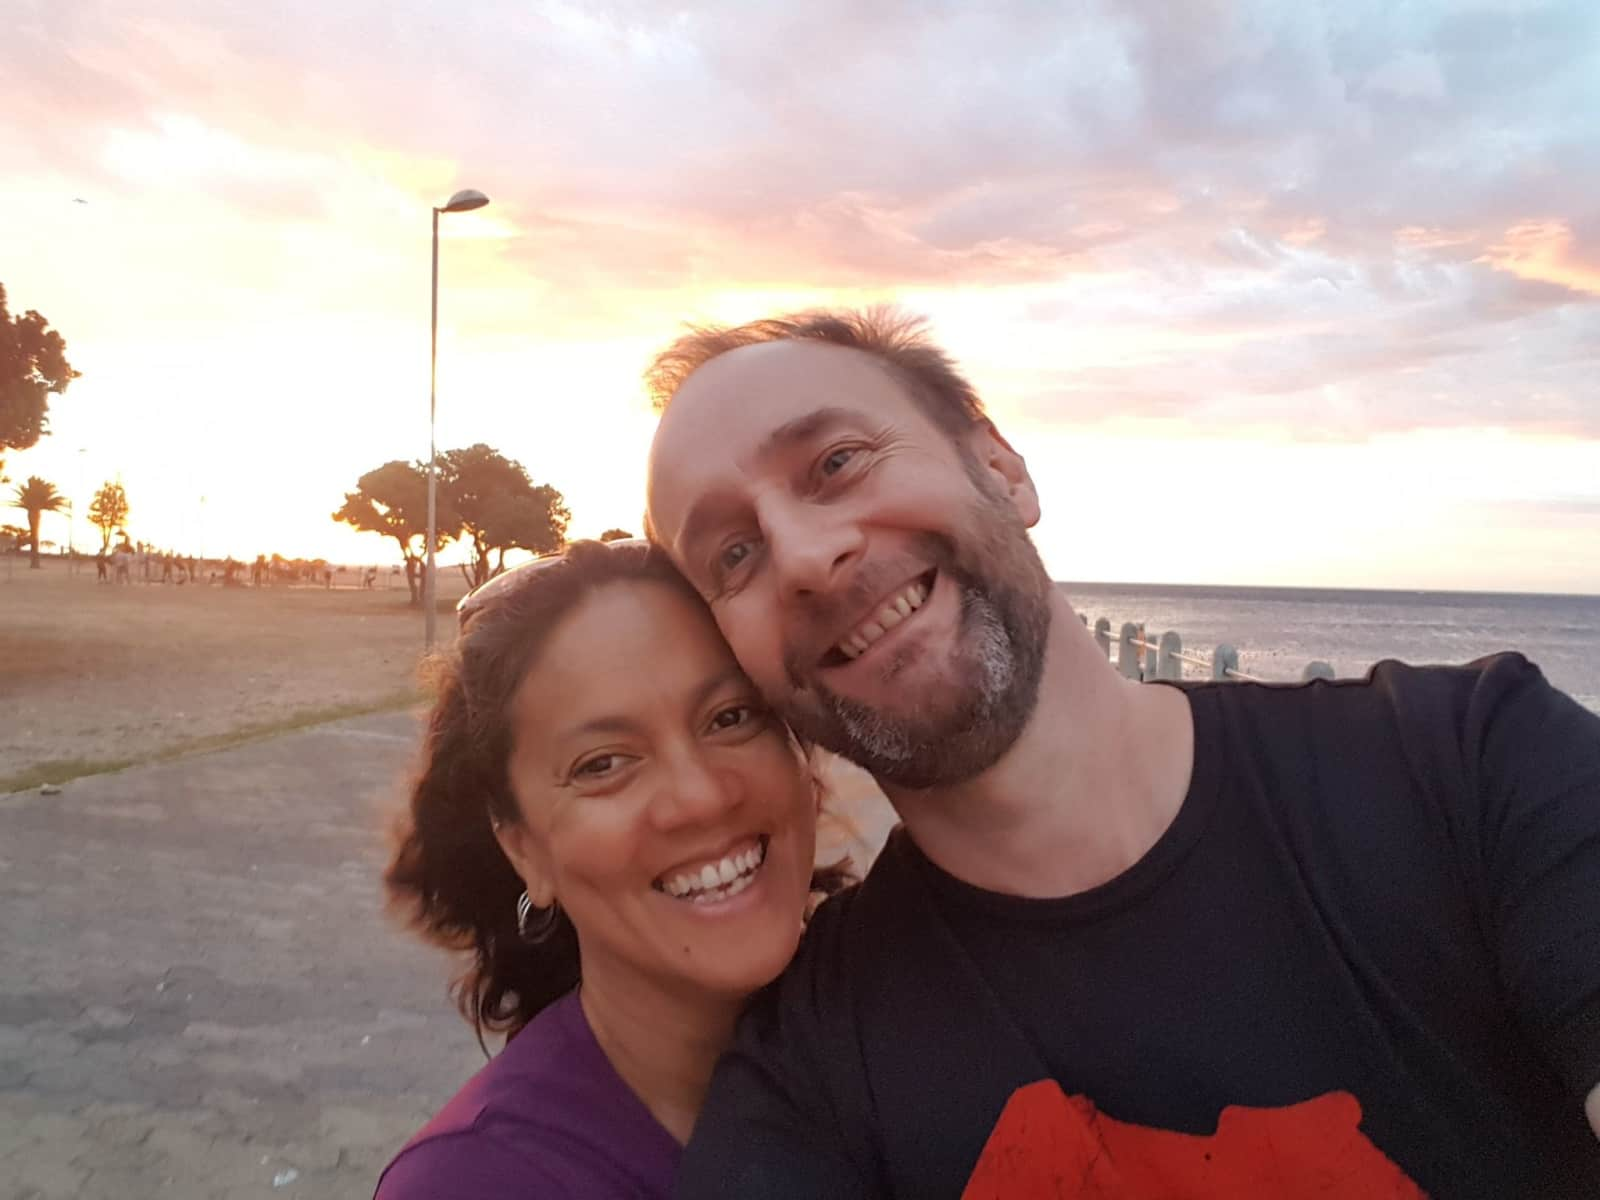 Adele & Stephen from Cape Town, South Africa